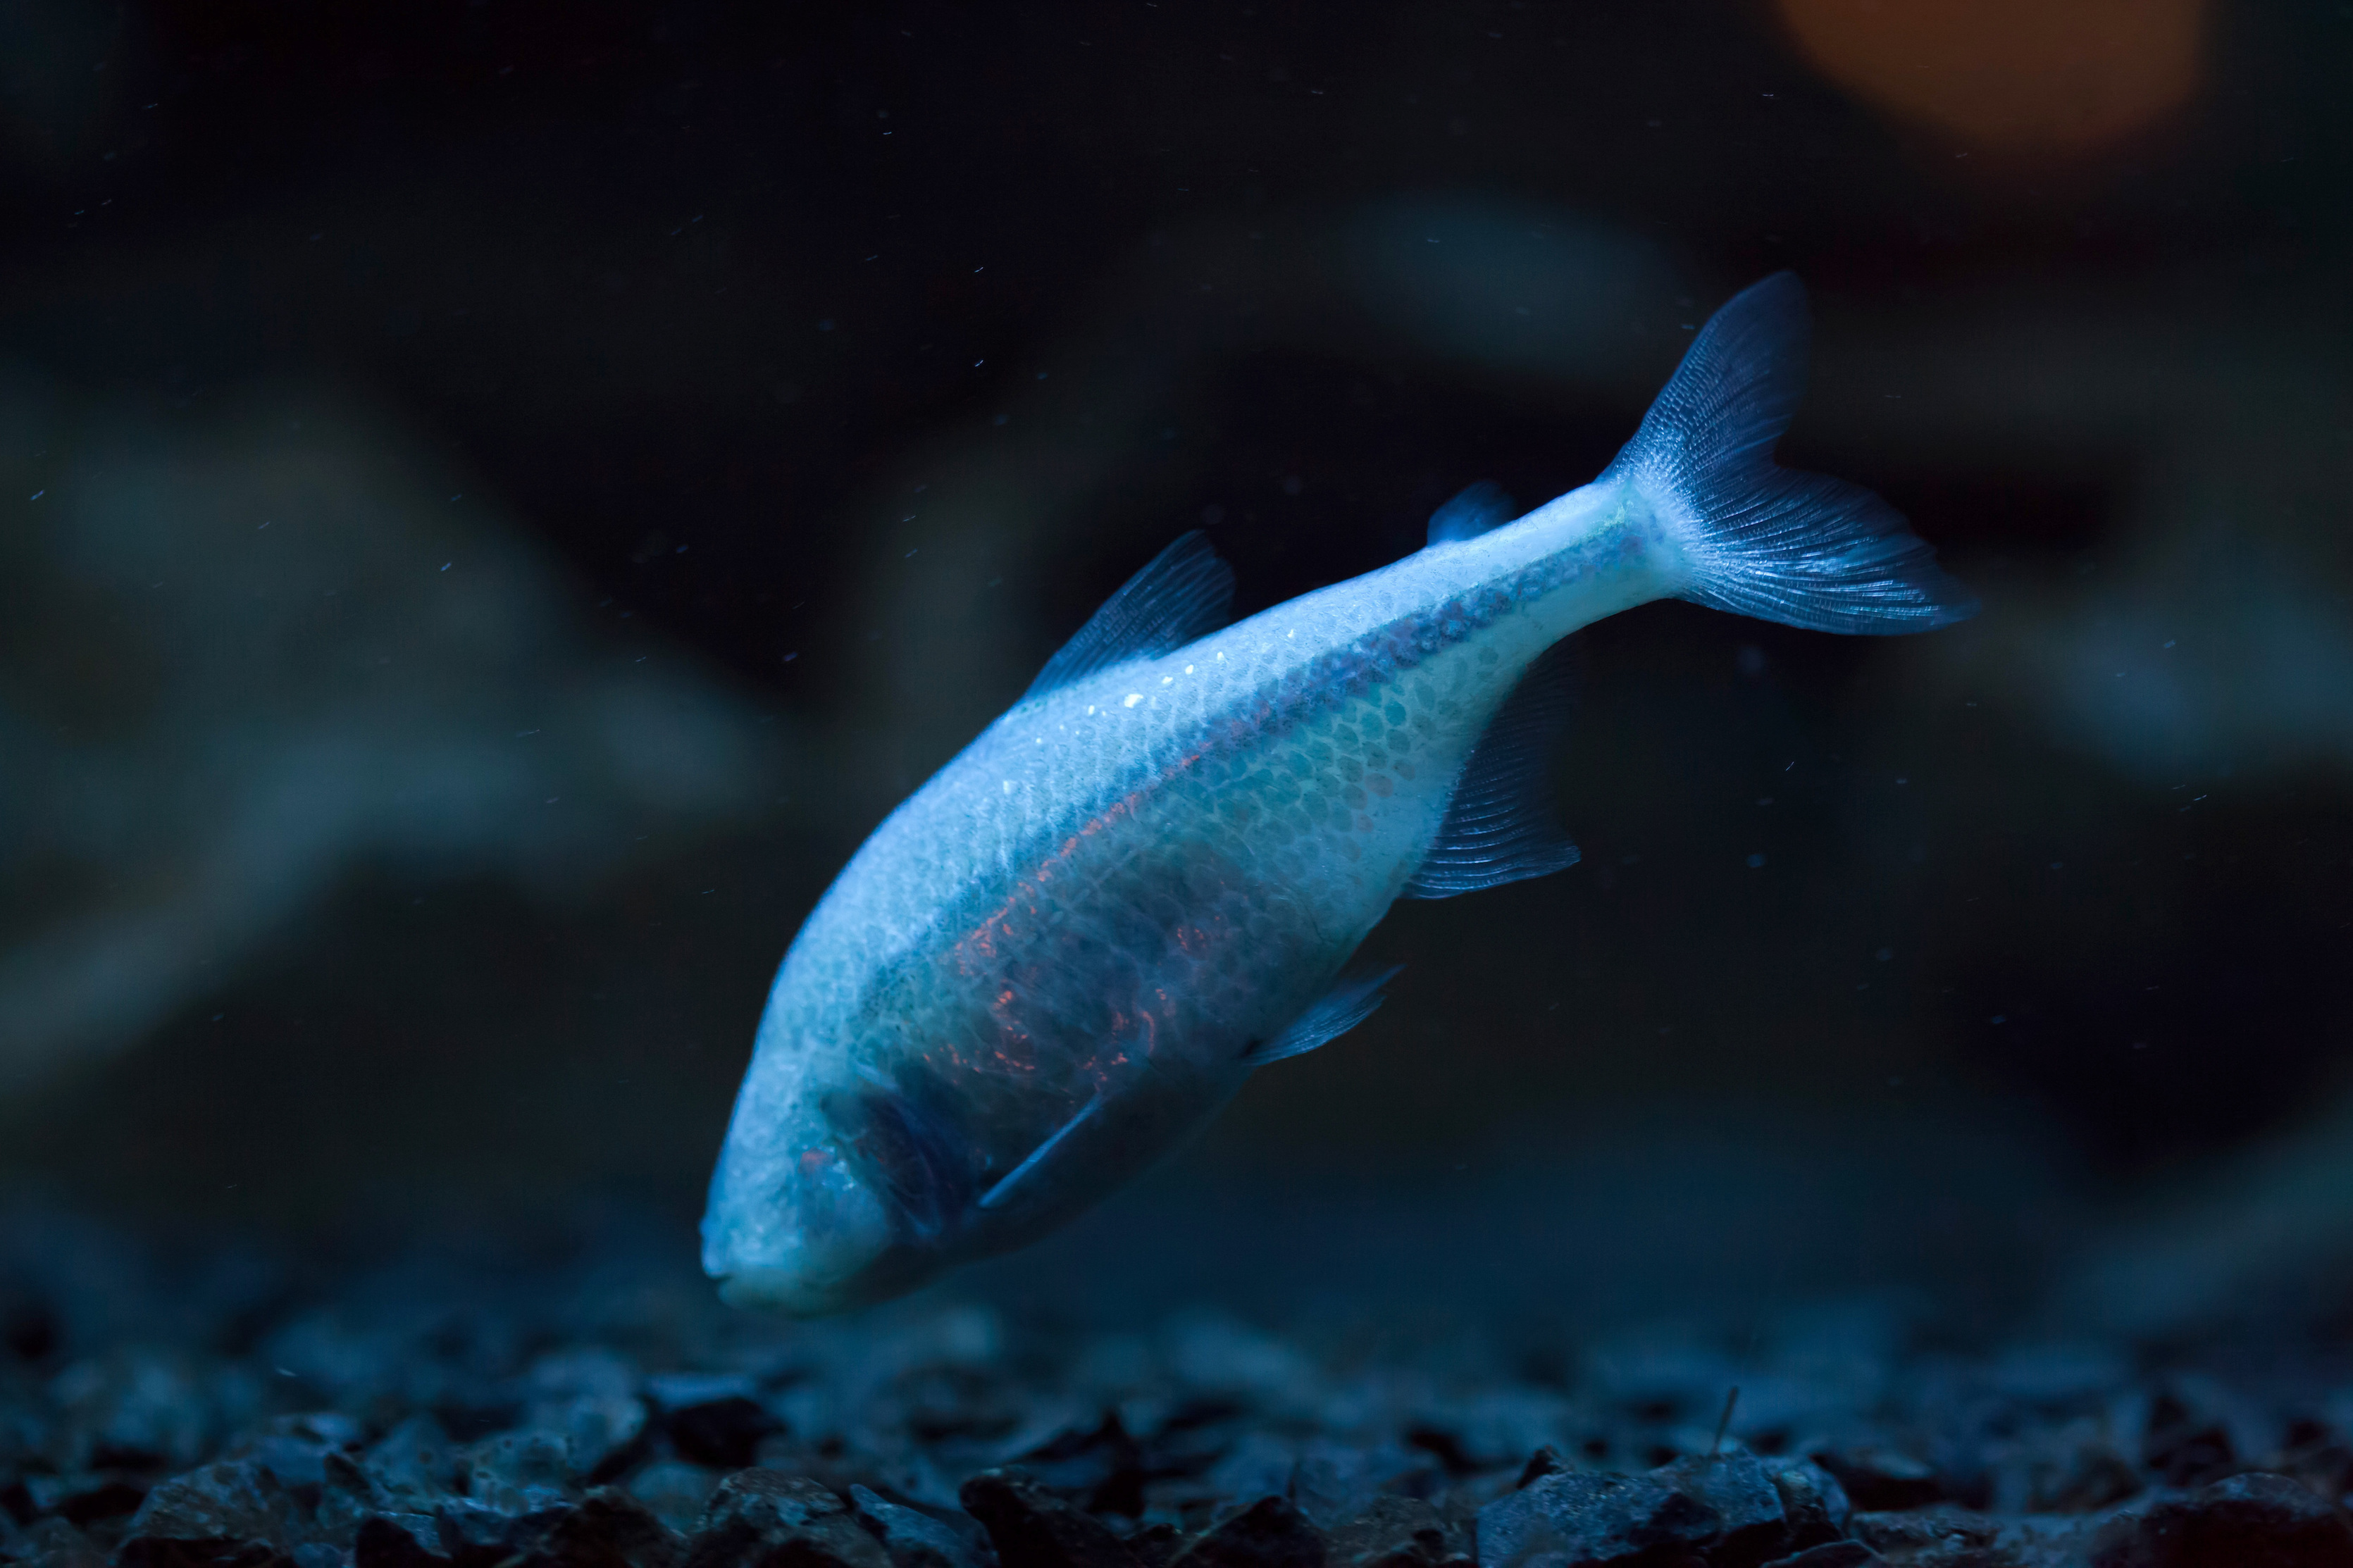 Do humans really need eight hours of sleep? Dr. Alex C. Keene sat down with Earth.com to discuss his research on sleep and the Mexican cavefish.